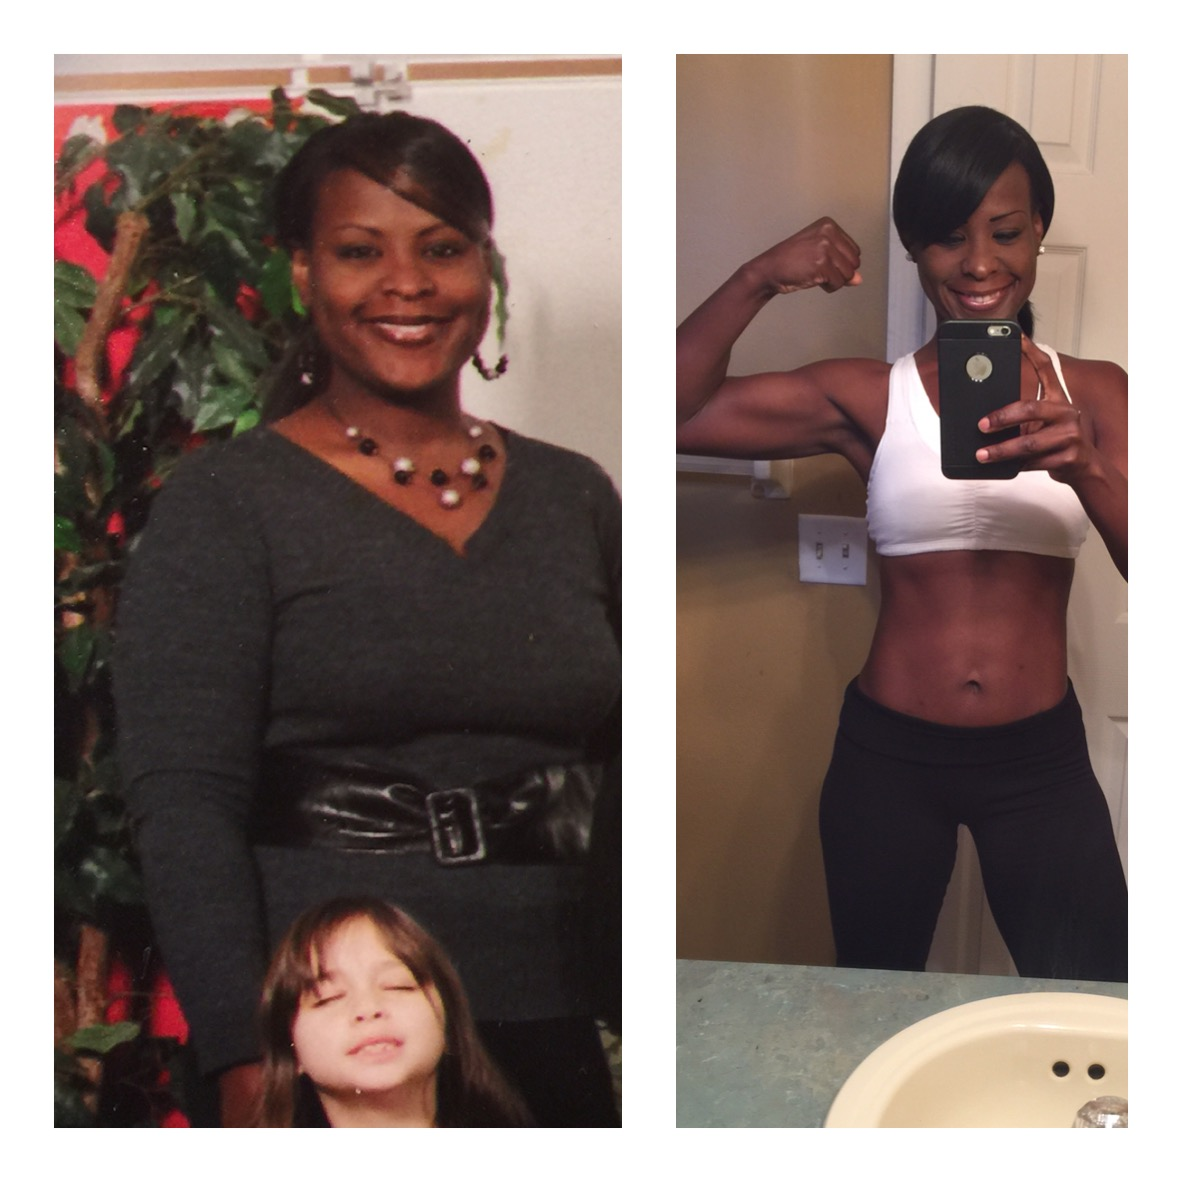 Great success story! Read before and after fitness transformation stories from women and men who hit weight loss goals and got THAT BODY with training and meal prep. Find inspiration, motivation, and workout tips | The Never ending diet